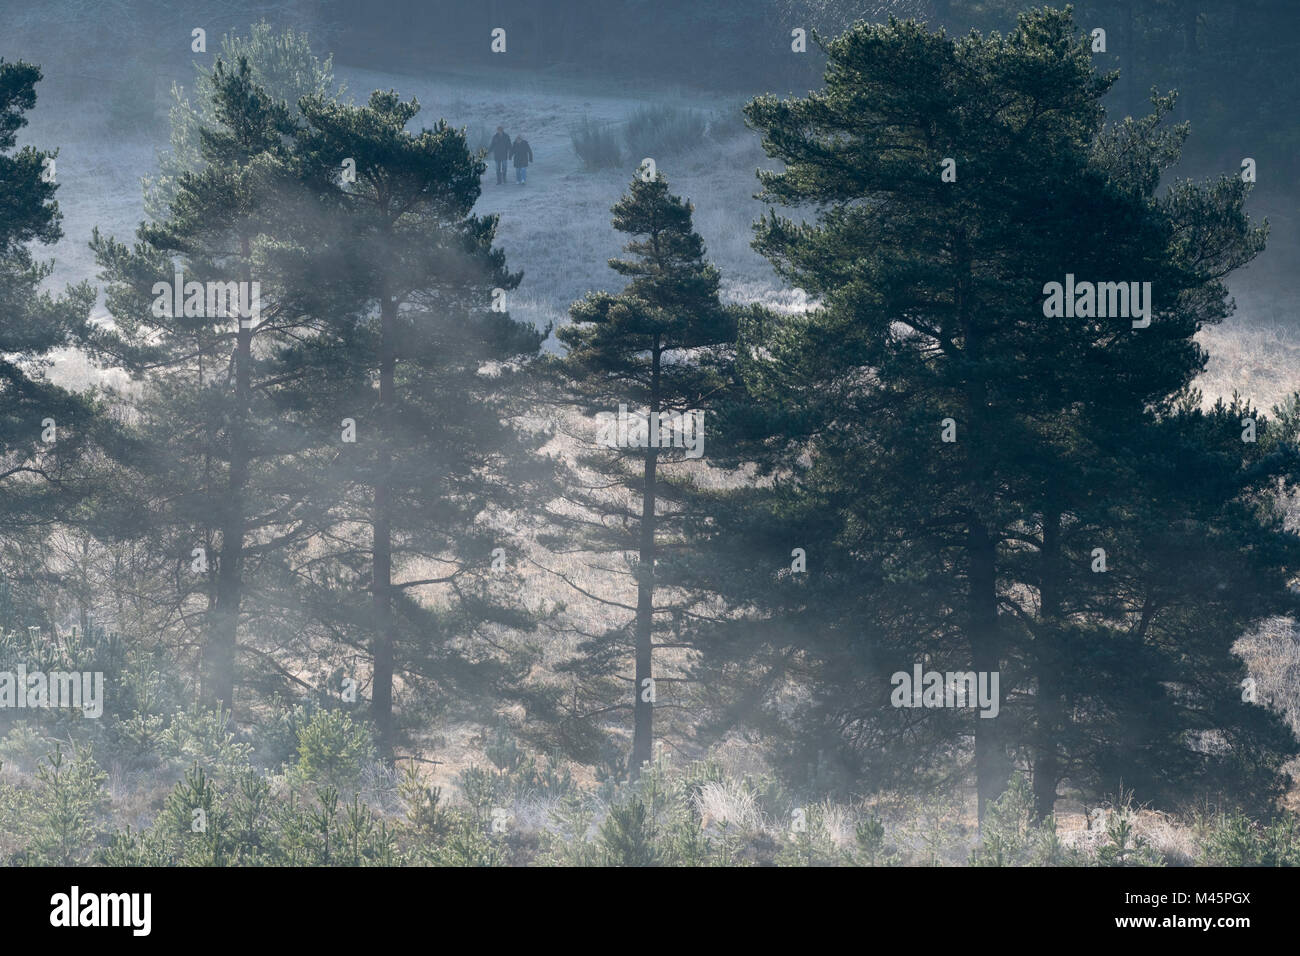 Mist rising over pine trees in Wishmoor Bottom, part of Swinley Forest, on the Berkshire-Surrey border, England - Stock Image